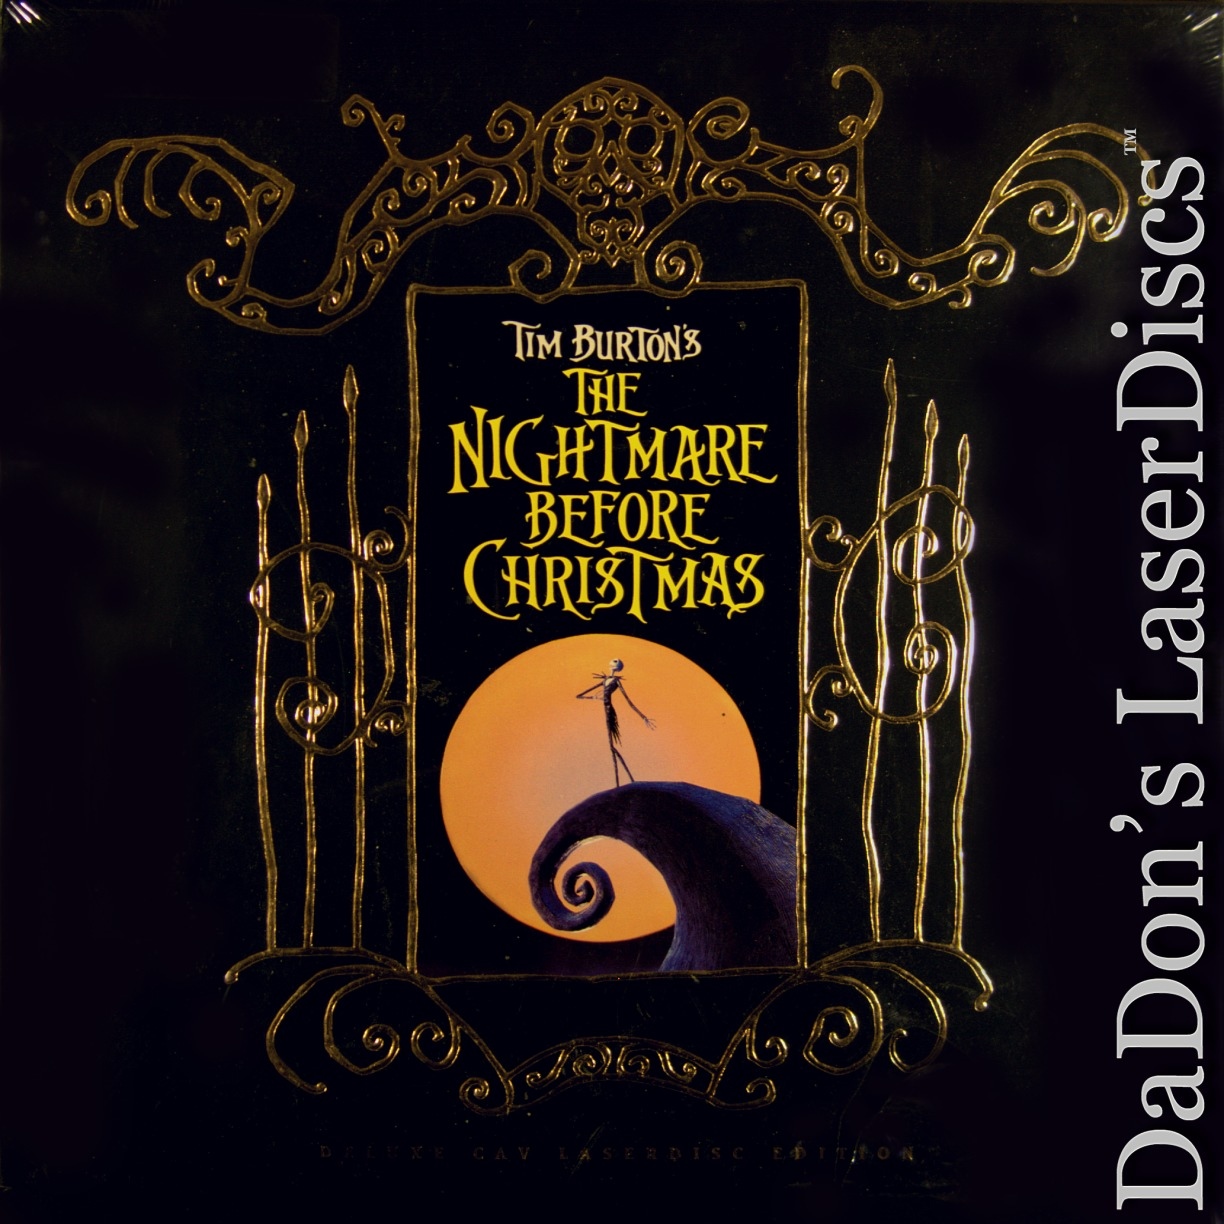 the nightmare before christmas ws laserdisc box set animation - Nightmare Before Christmas Runtime